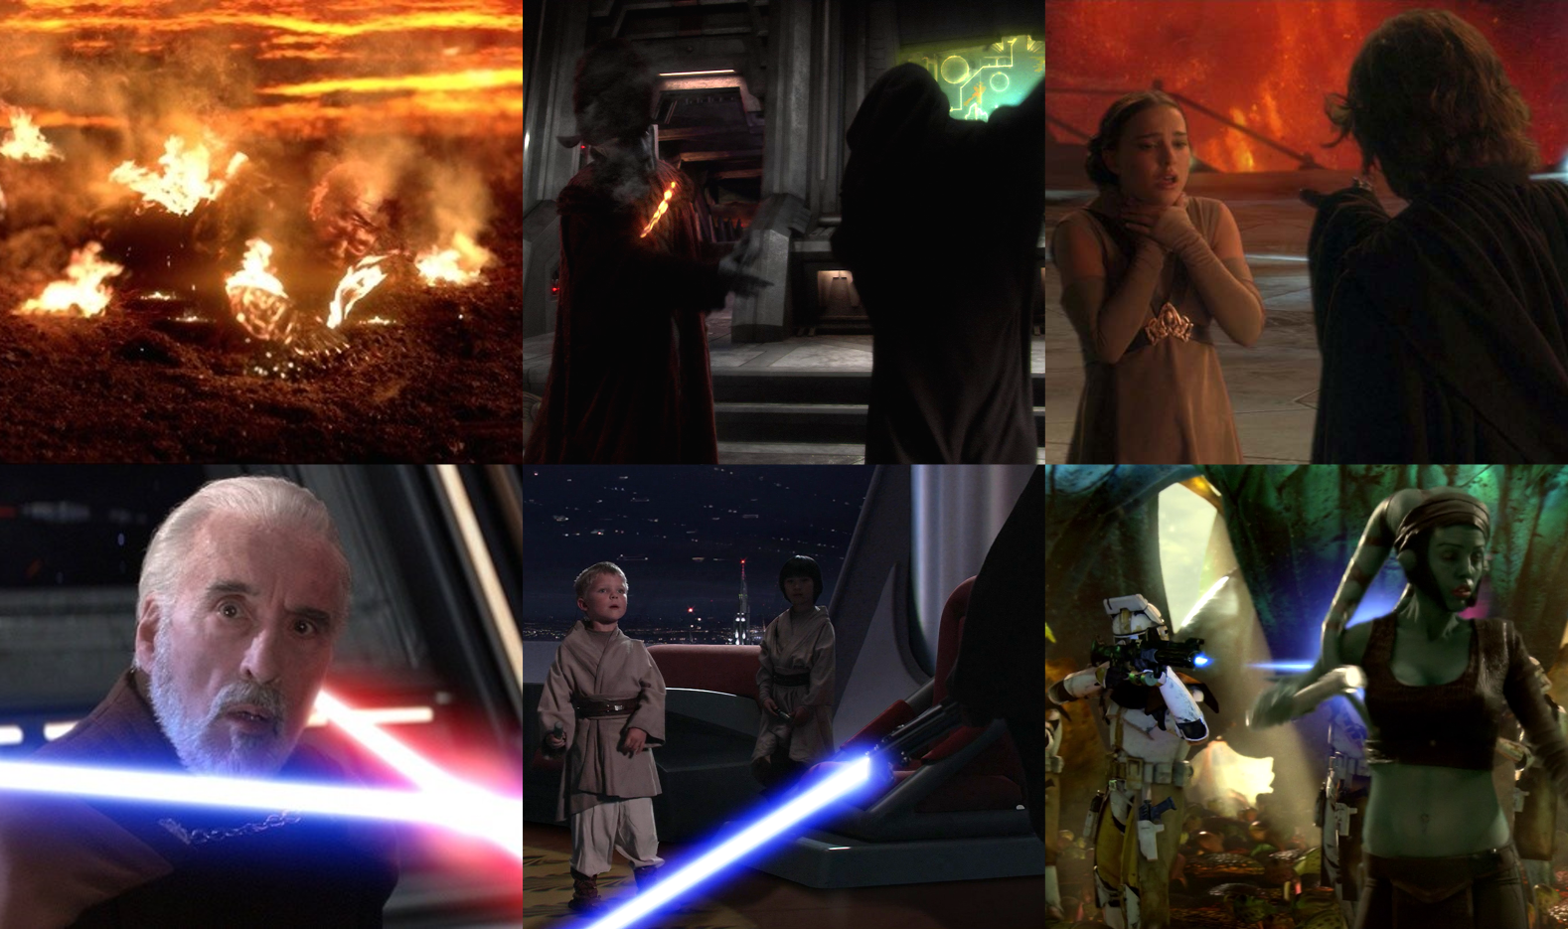 Apparently Revenge Of The Sith S Order 66 Sequence Could Have Been More Violent